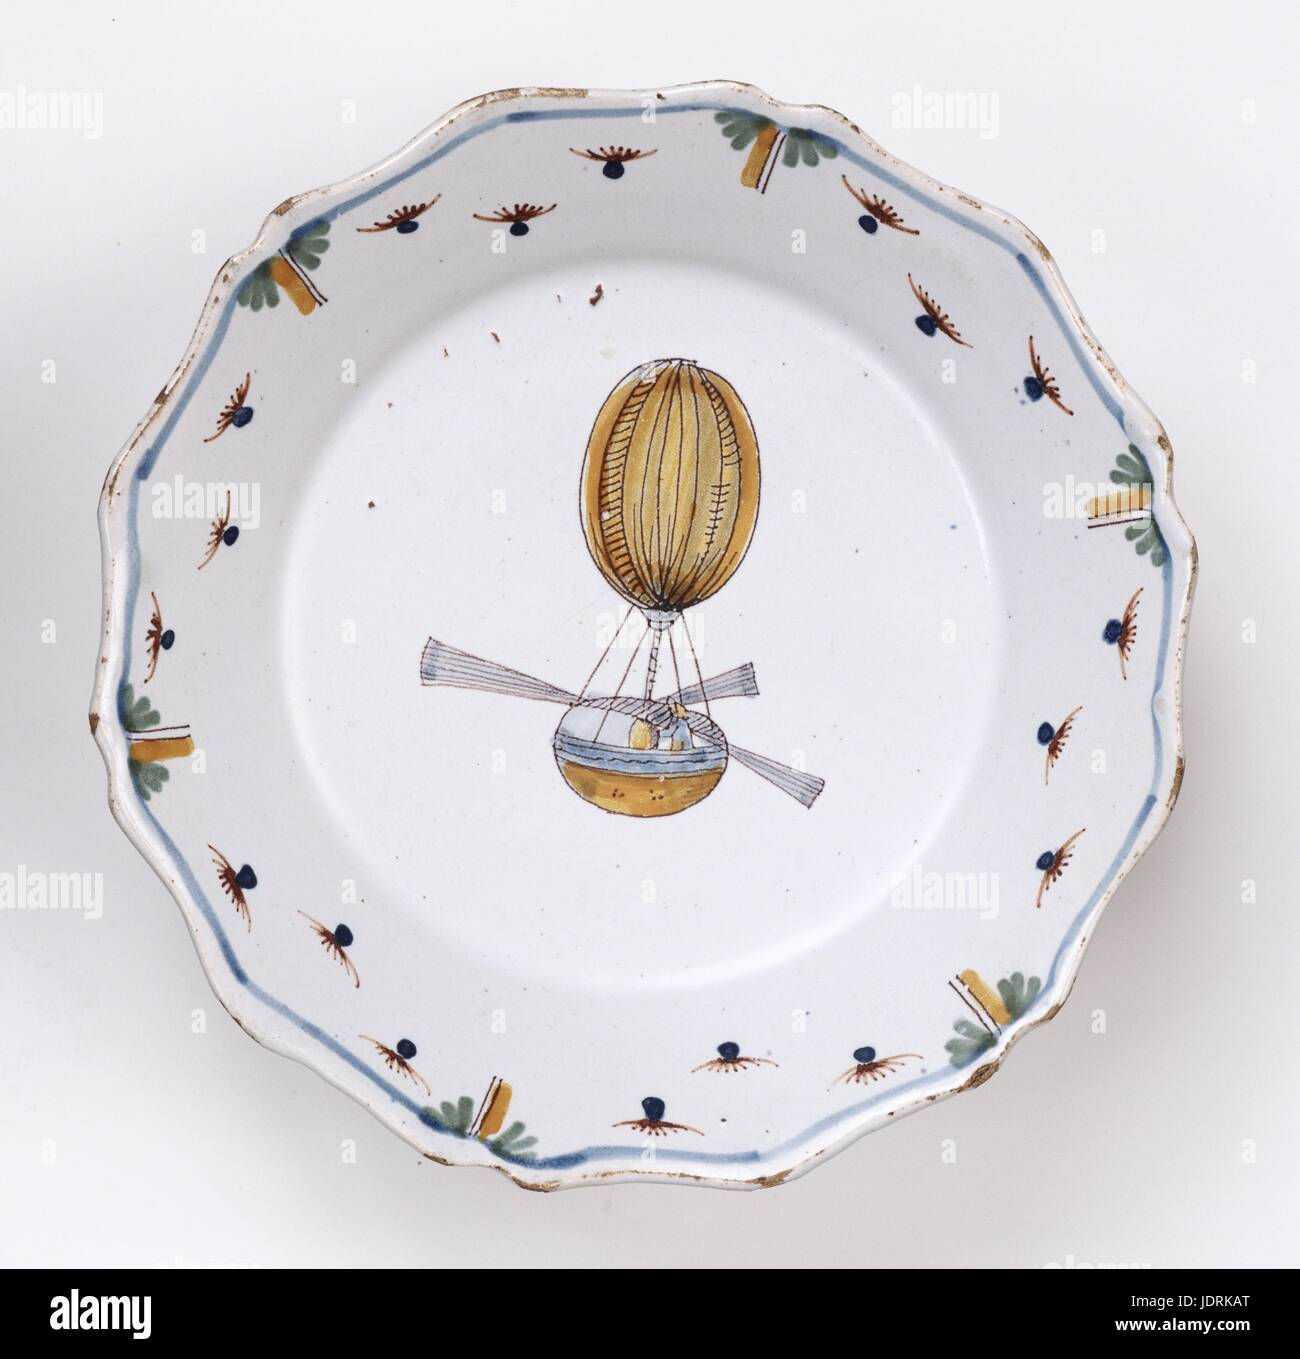 Polychrome faience plate with curved edging, Nevers  Blainville engineer's balloon  Diameter 23 cm  Muller-Quênot Stock Photo